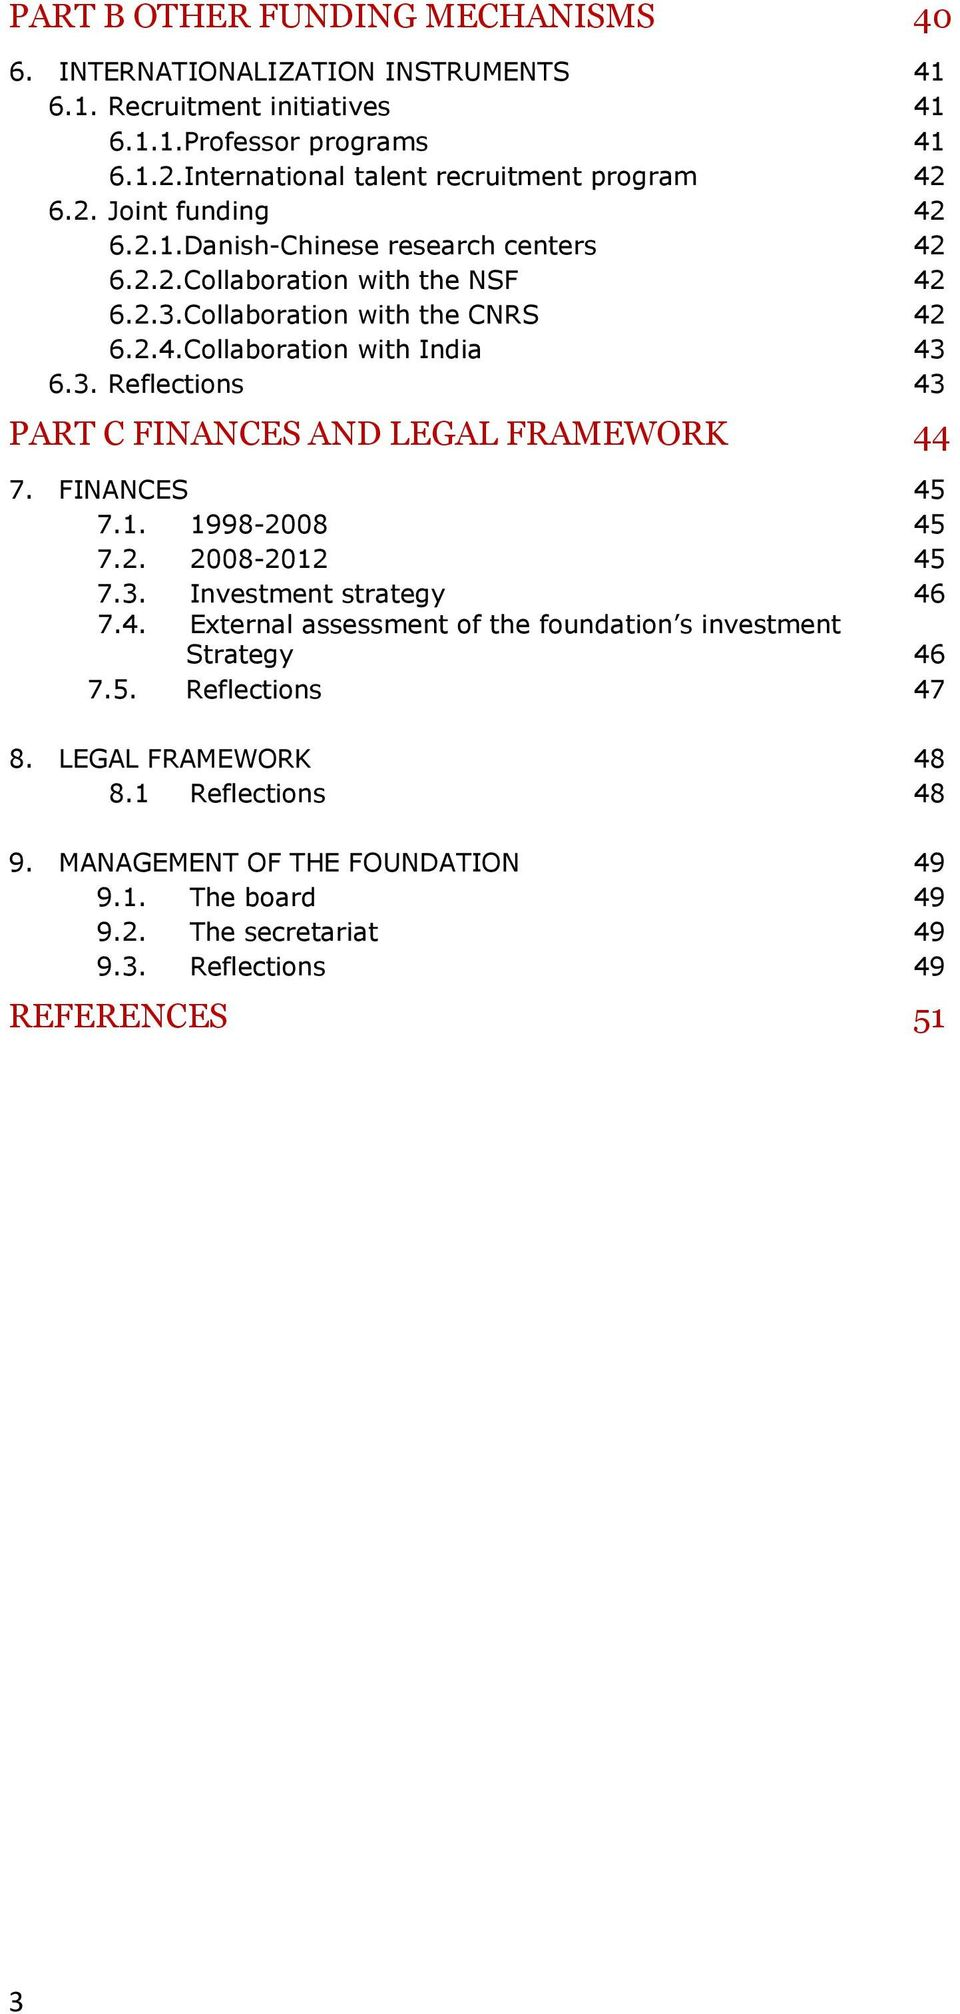 3. Reflections 43 PART C FINANCES AND LEGAL FRAMEWORK 44 7. FINANCES 45 7.1. 1998-2008 45 7.2. 2008-2012 45 7.3. Investment strategy 46 7.4. External assessment of the foundation s investment Strategy 46 7.